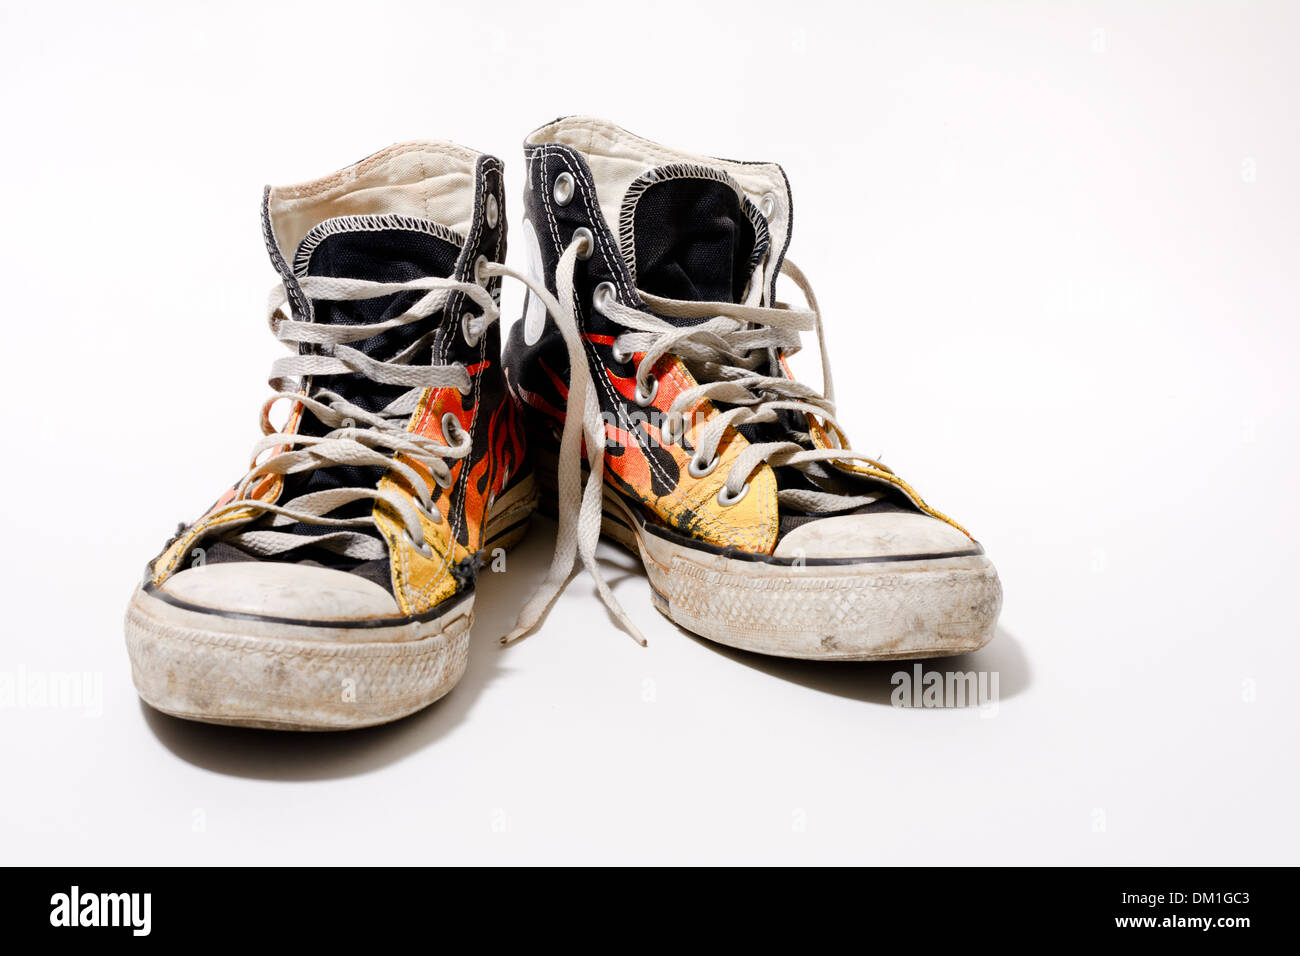 ae66bc3c815 Worn and dirty Converse All Star shoes isolated on white background - Stock  Image